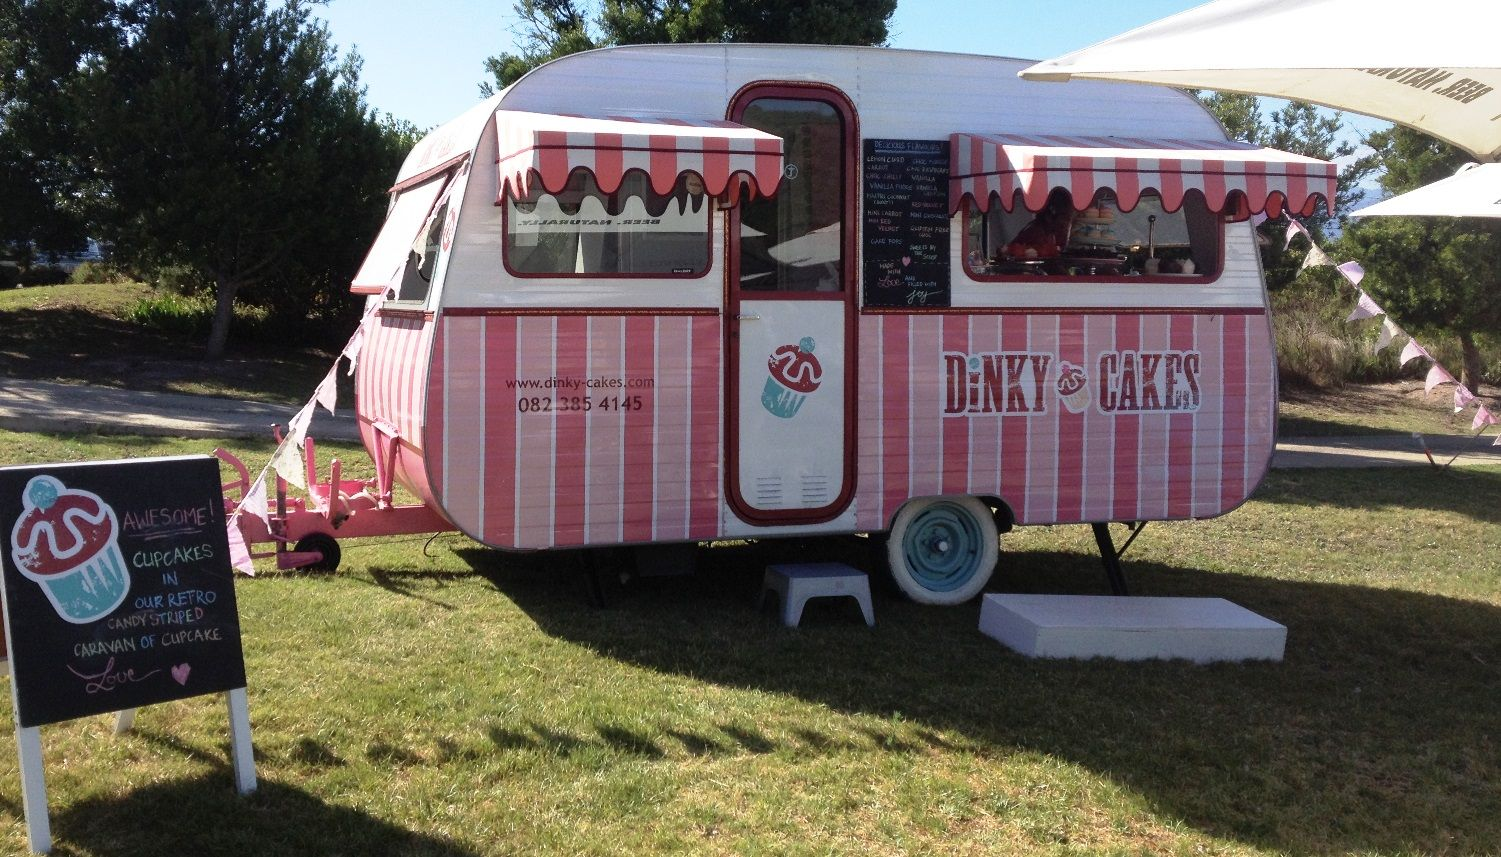 Dinky cakes our retro candy striped caravan of cupcake